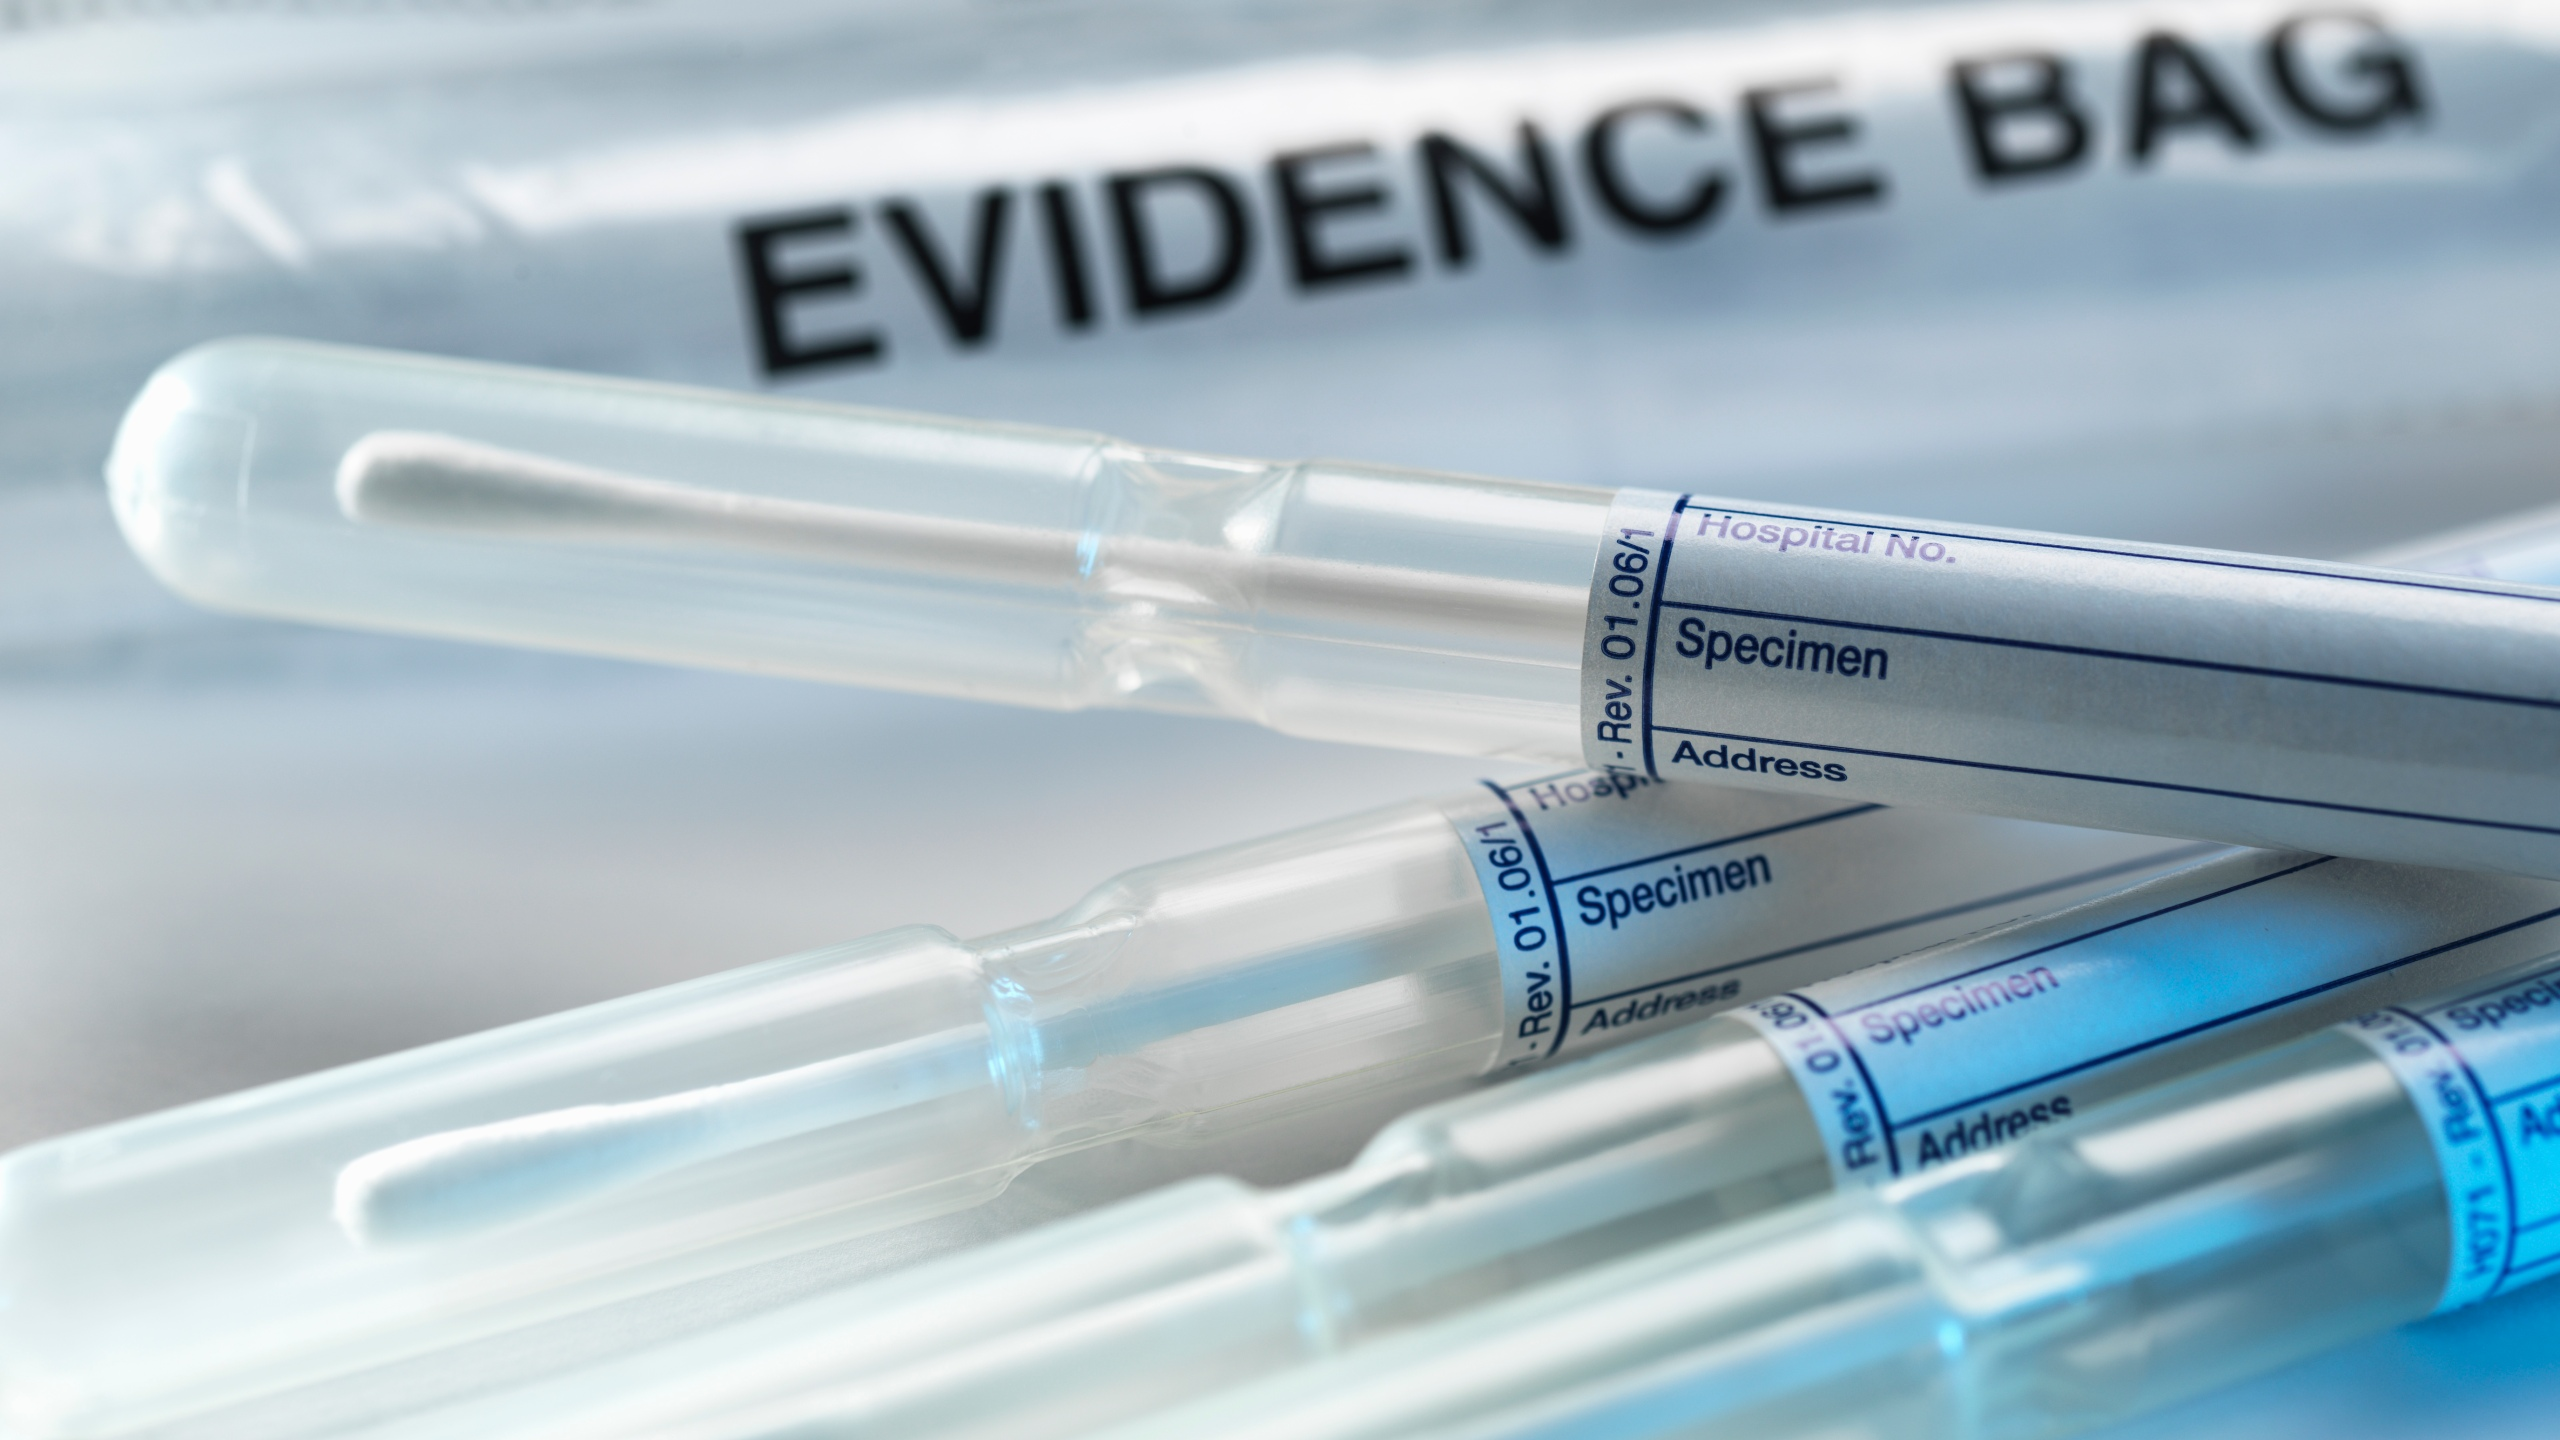 A row of samples from a crime scene on top of genetic testing results are pictured in this undated photo. (Credit: Getty Images)